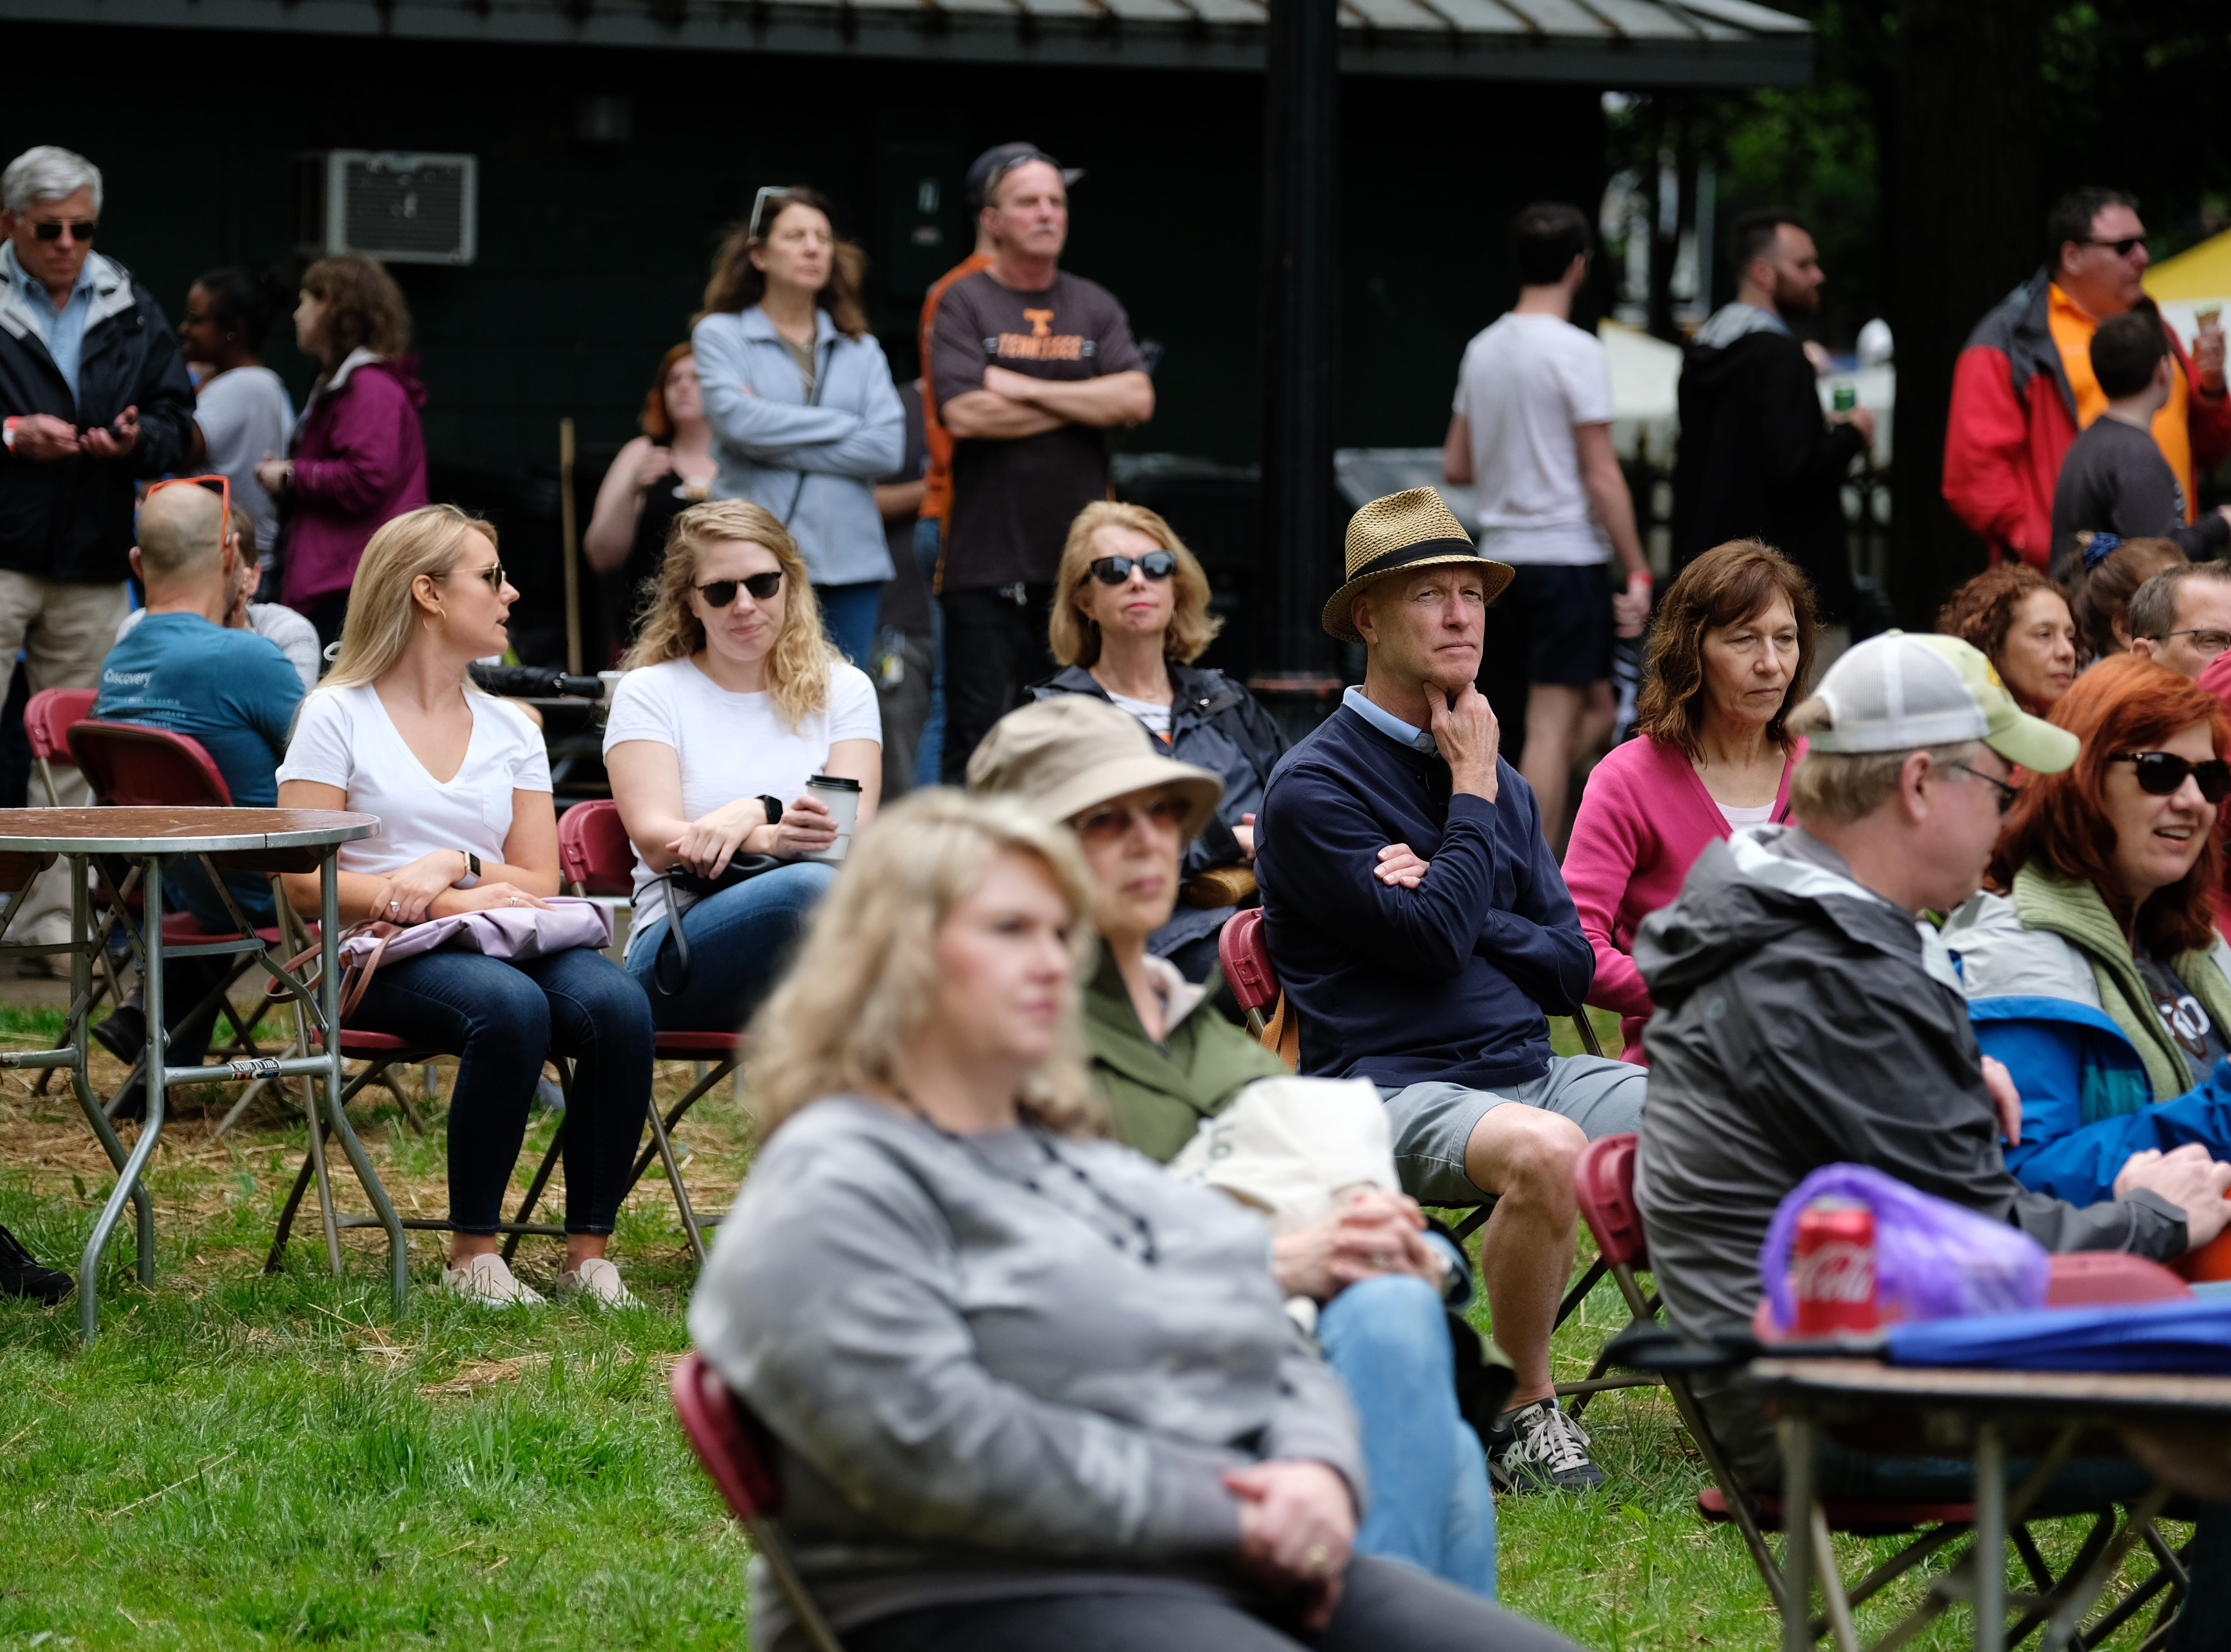 Attendees gather as the Ensemble Swing Time performs during the Rossini Festival in Knoxville on Saturday, April 13, 2019. (Shawn Millsaps/Special to News Sentinel)